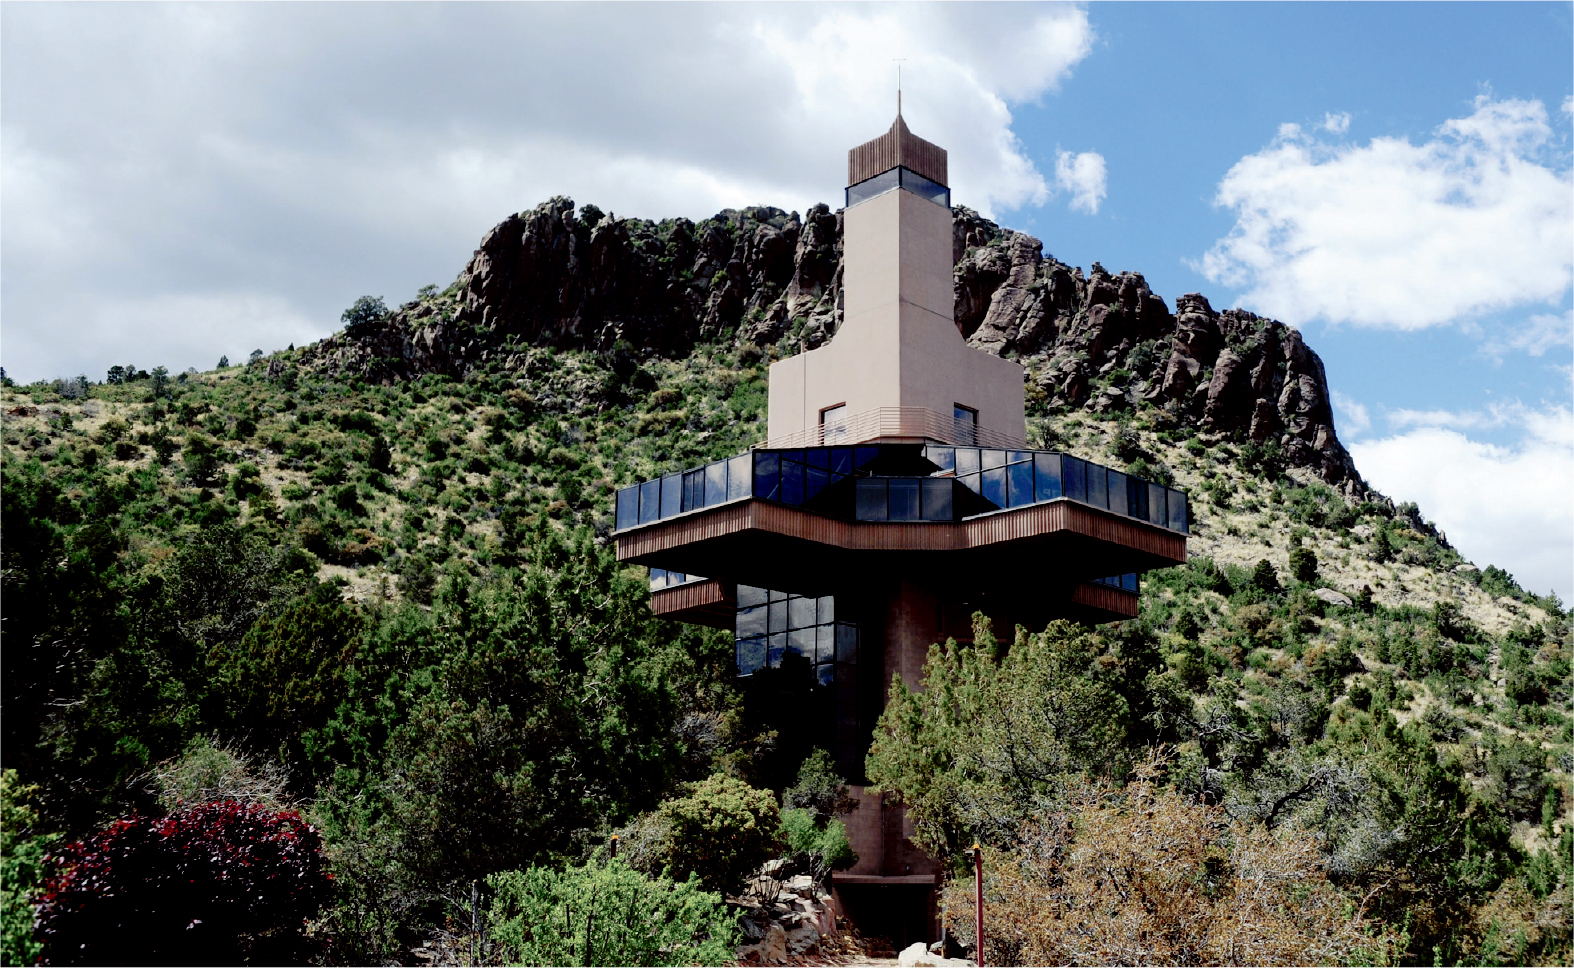 The Tallest House in the World Now on the Market for $1.5 Million tallest house in the world The Tallest House in the World Now on the Market for $1.5 Million The Tallest House in the World Now on the Market for 1